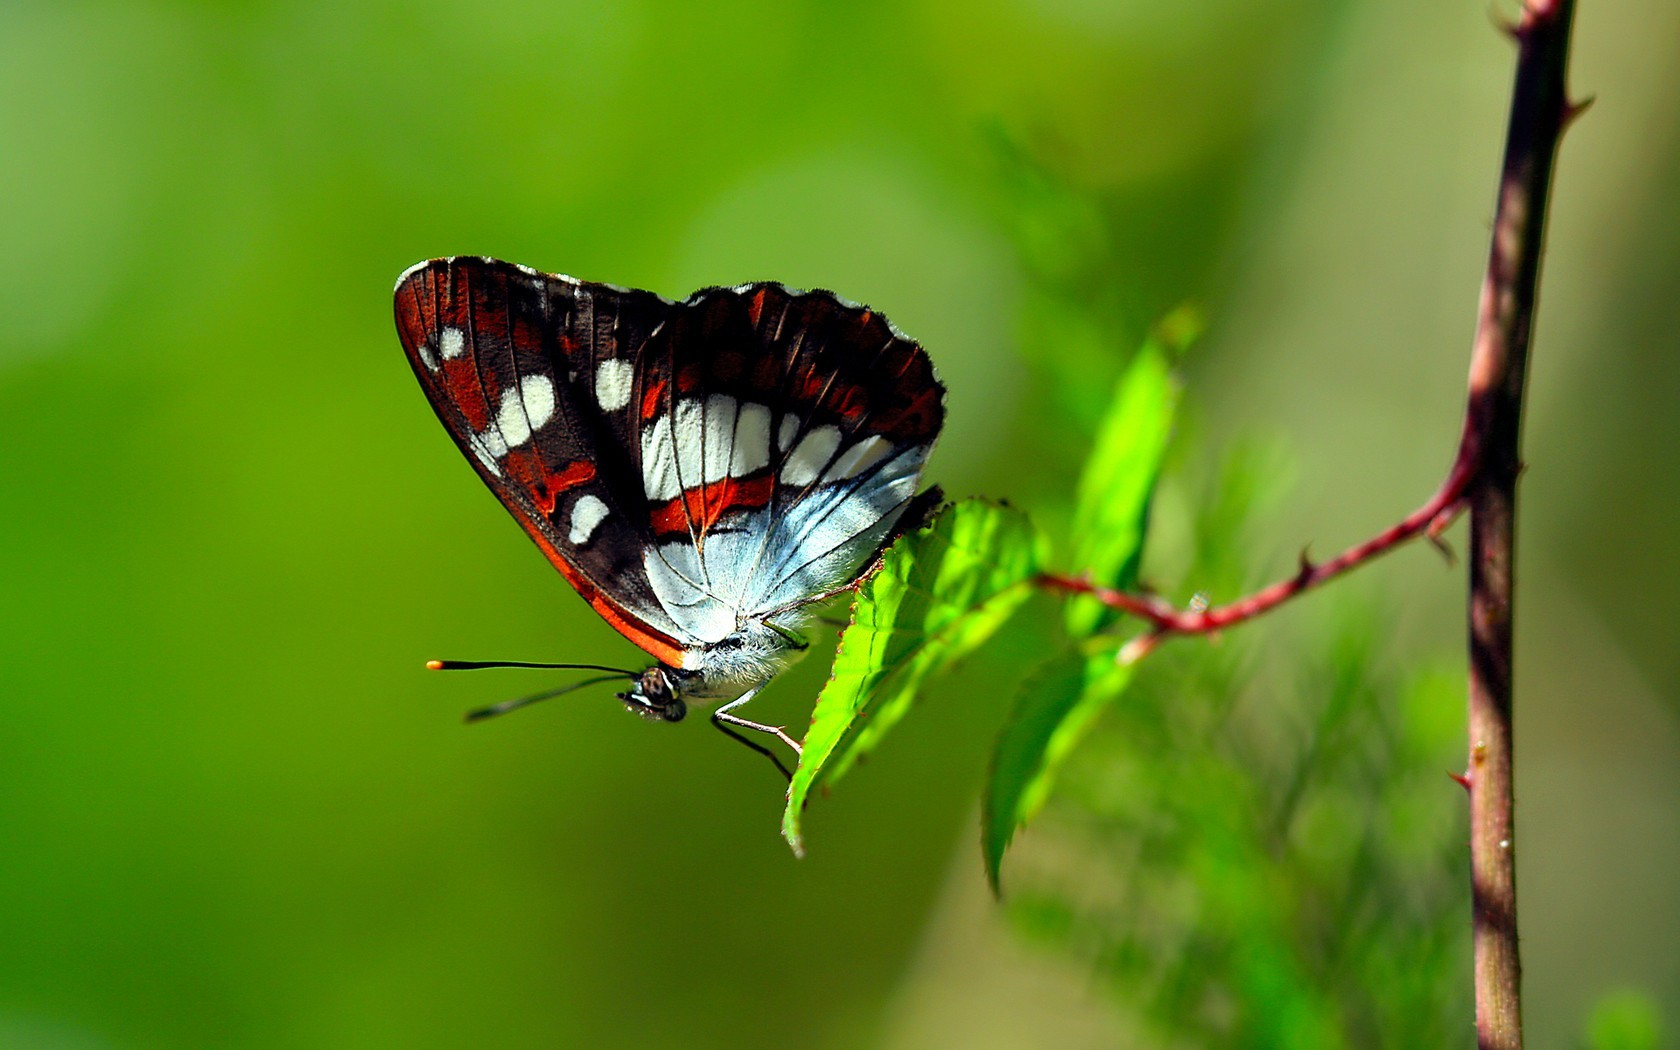 Green nature insects Butterflies HD Wallpaper